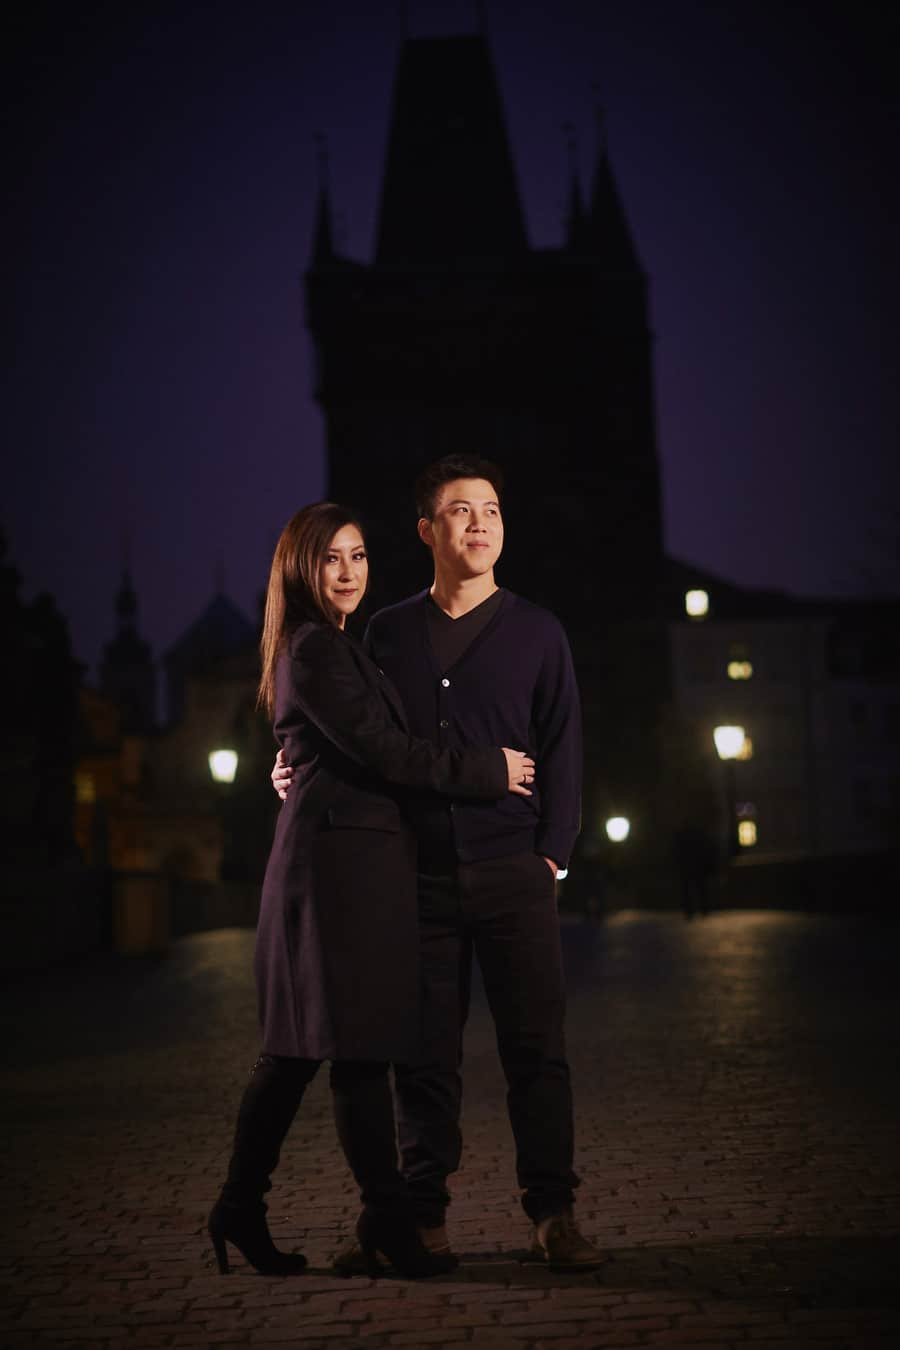 Prague Charles Bridge at night, stylish young couple wearing black, holding each other